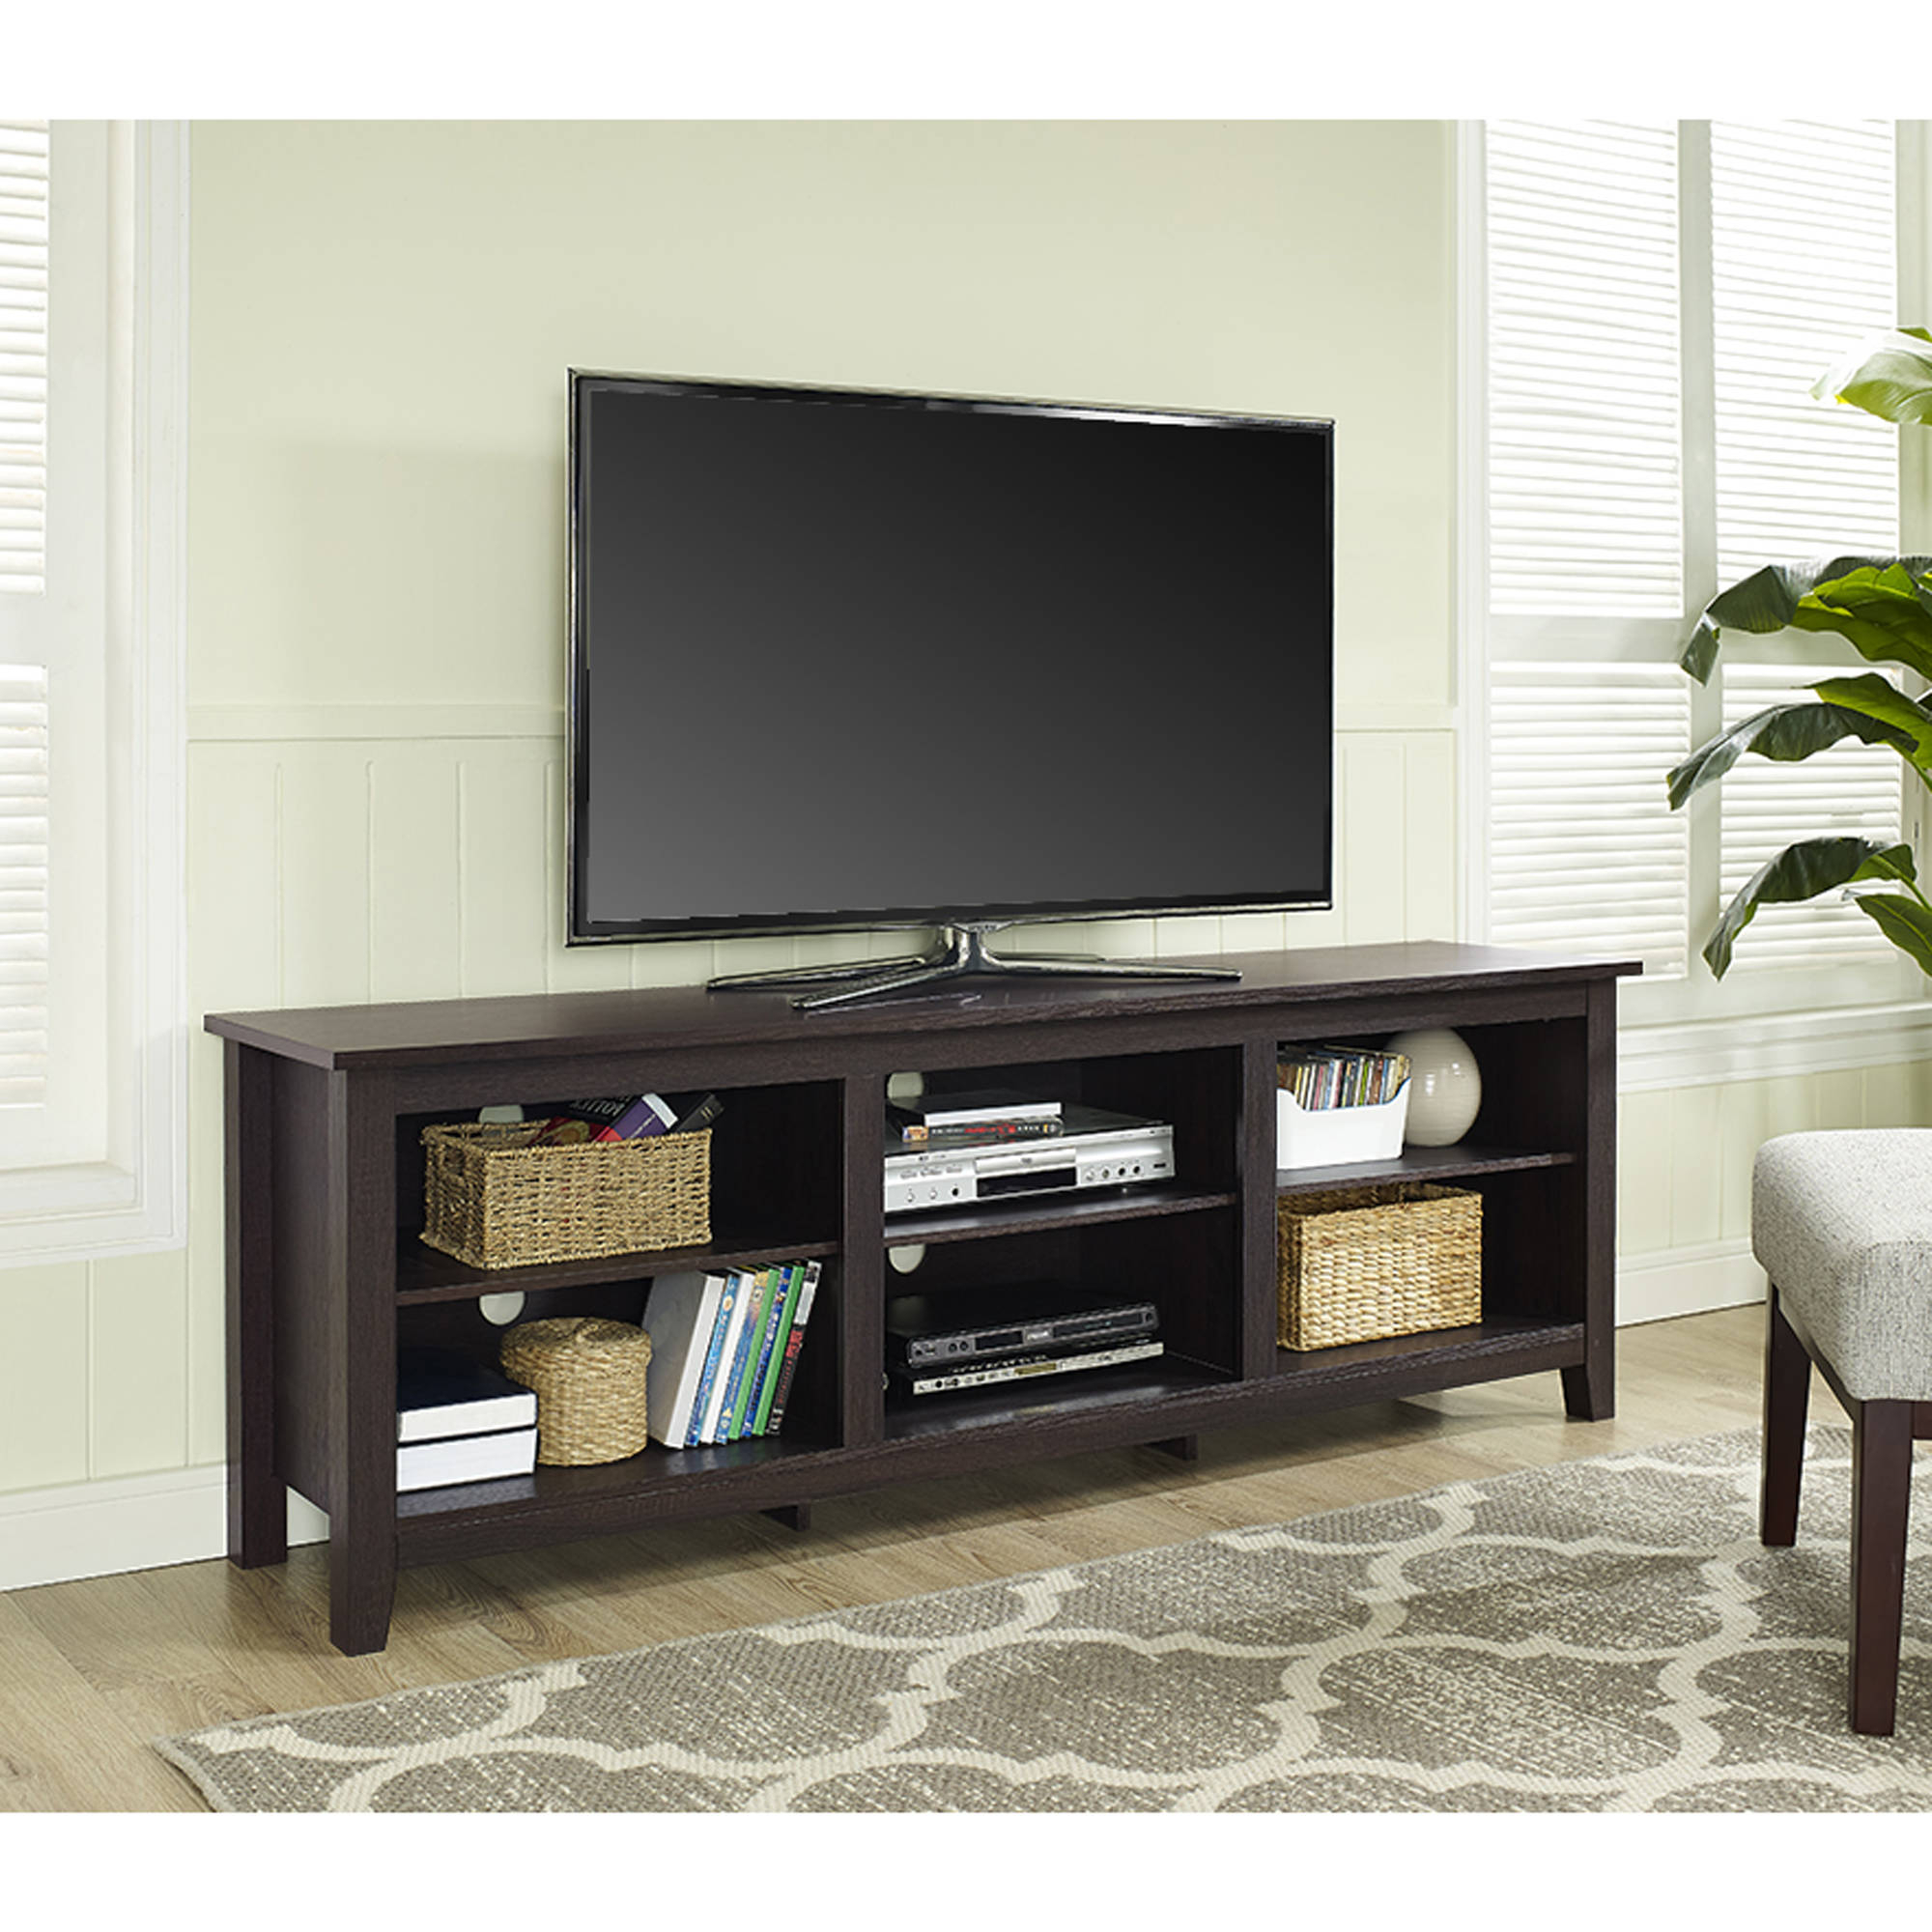 """Tv Stands For 70 Inch Tvs Regarding Recent Monarch Tv Stand Dark Taupe Euro Style For Tvs Up To 70""""l – Walmart (View 9 of 20)"""